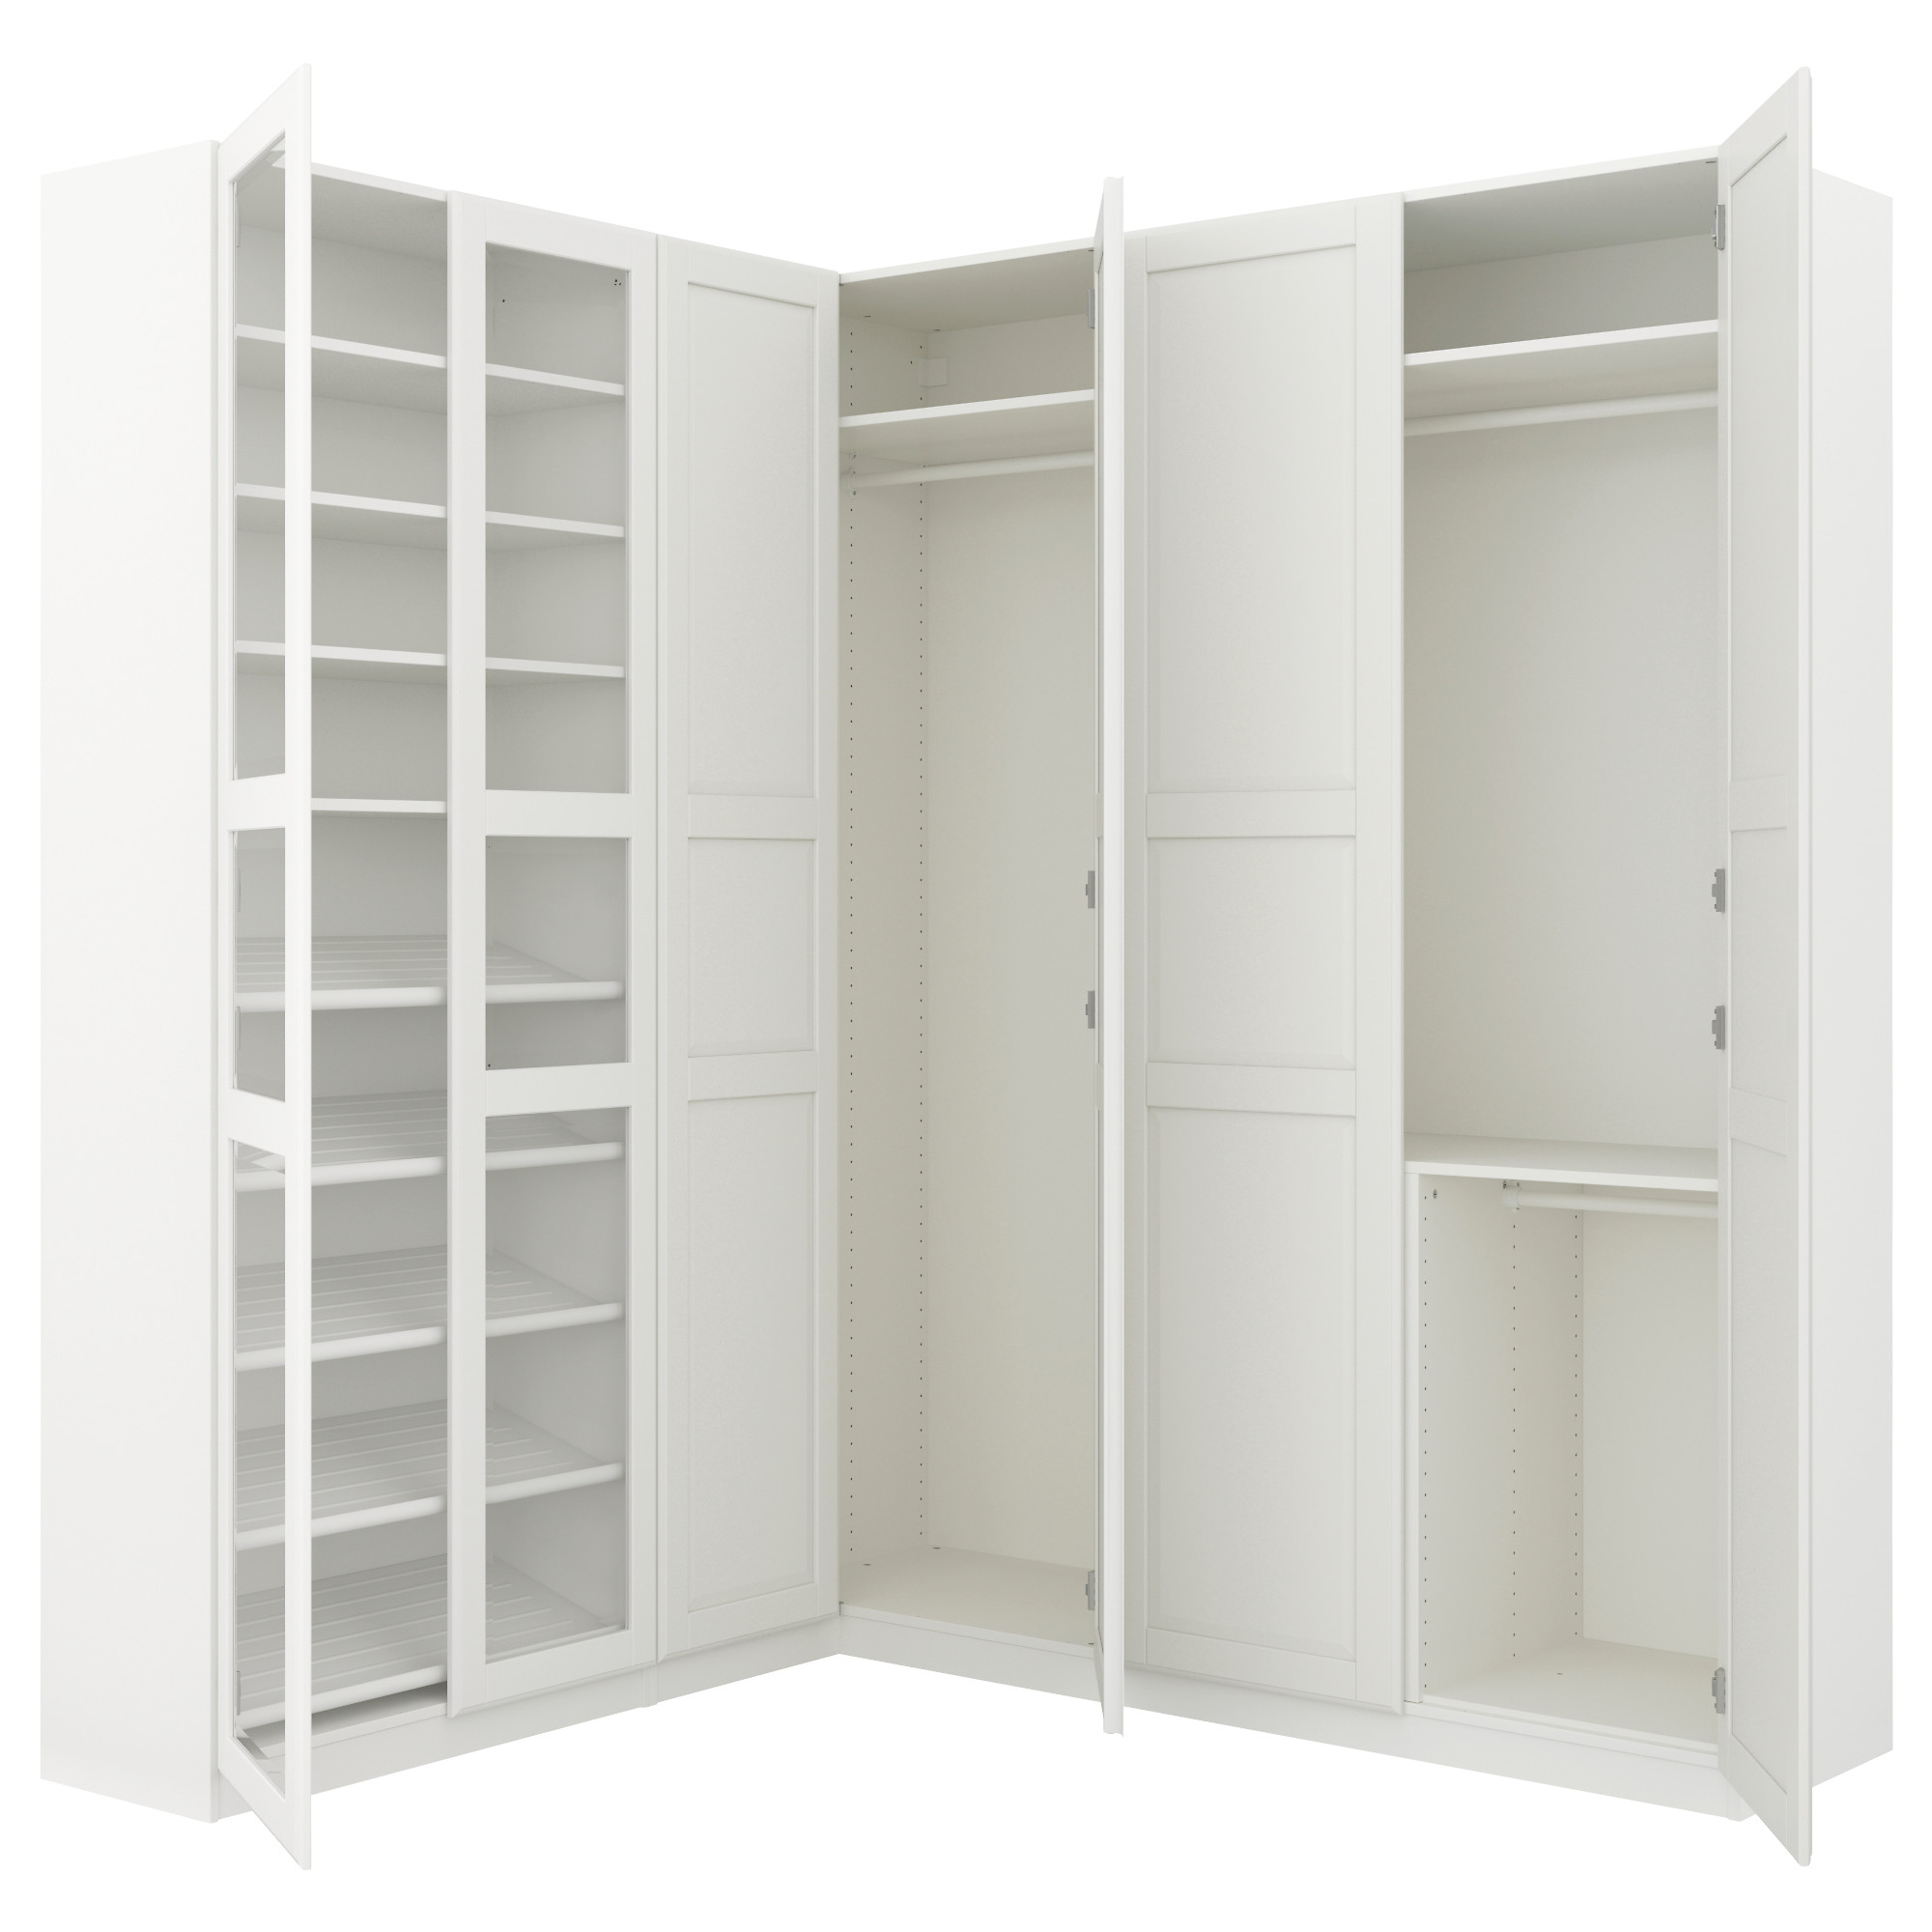 Ikea Wardrobe | Ikea Brimnes Wardrobe Review | Ikea Solid Wood Wardrobe